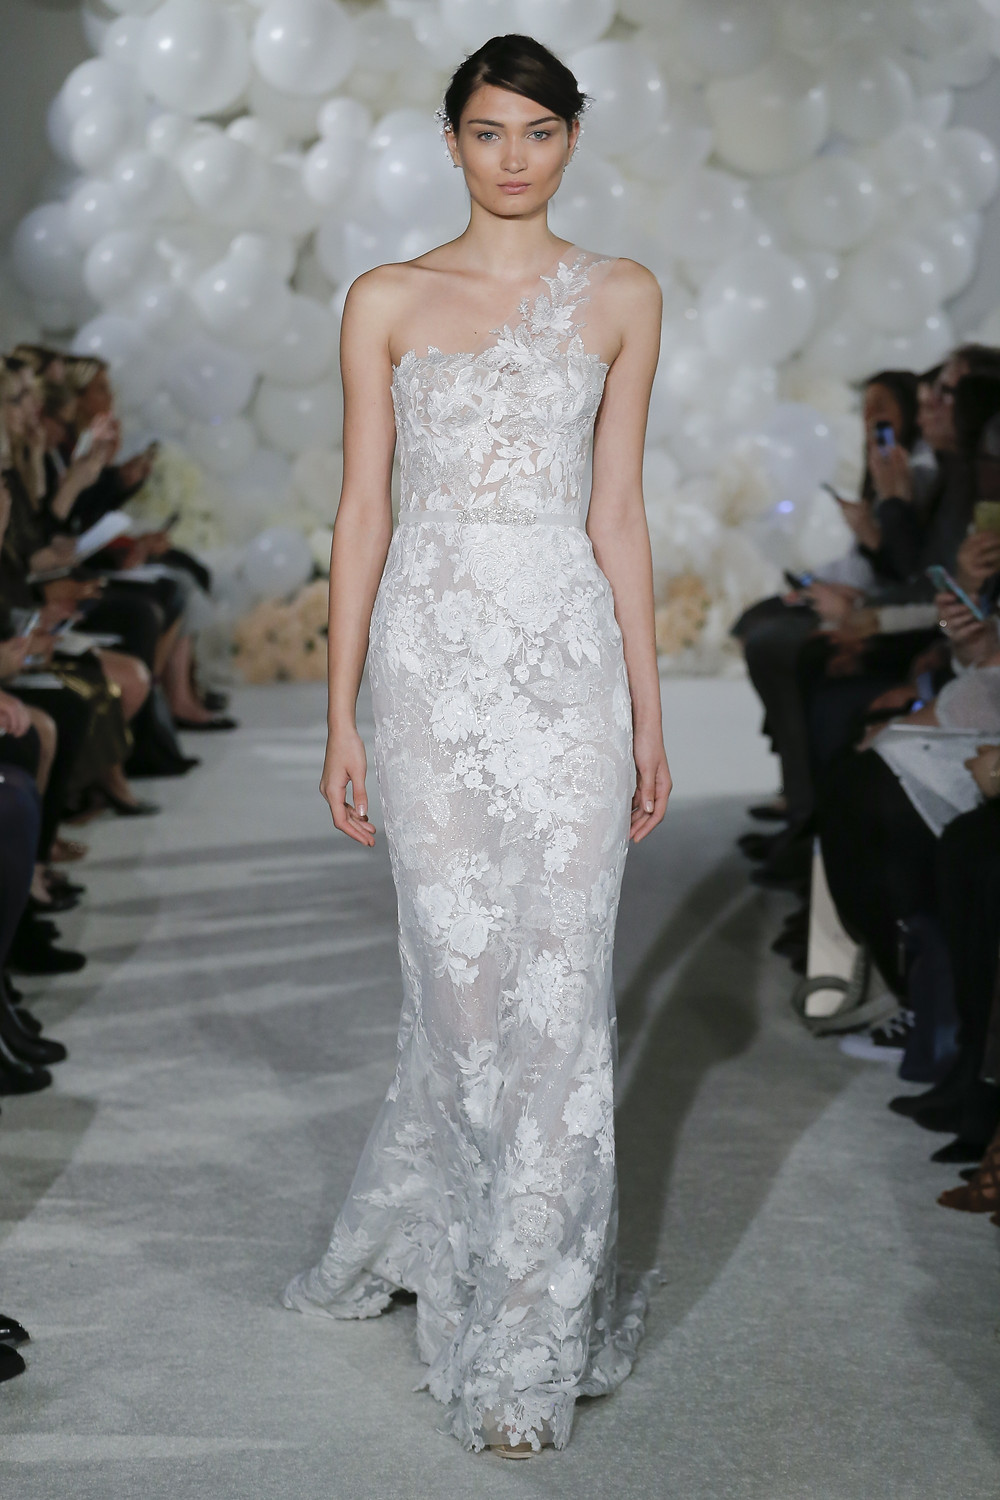 A one shoulder sheath wedding dress with floral print and embellishments